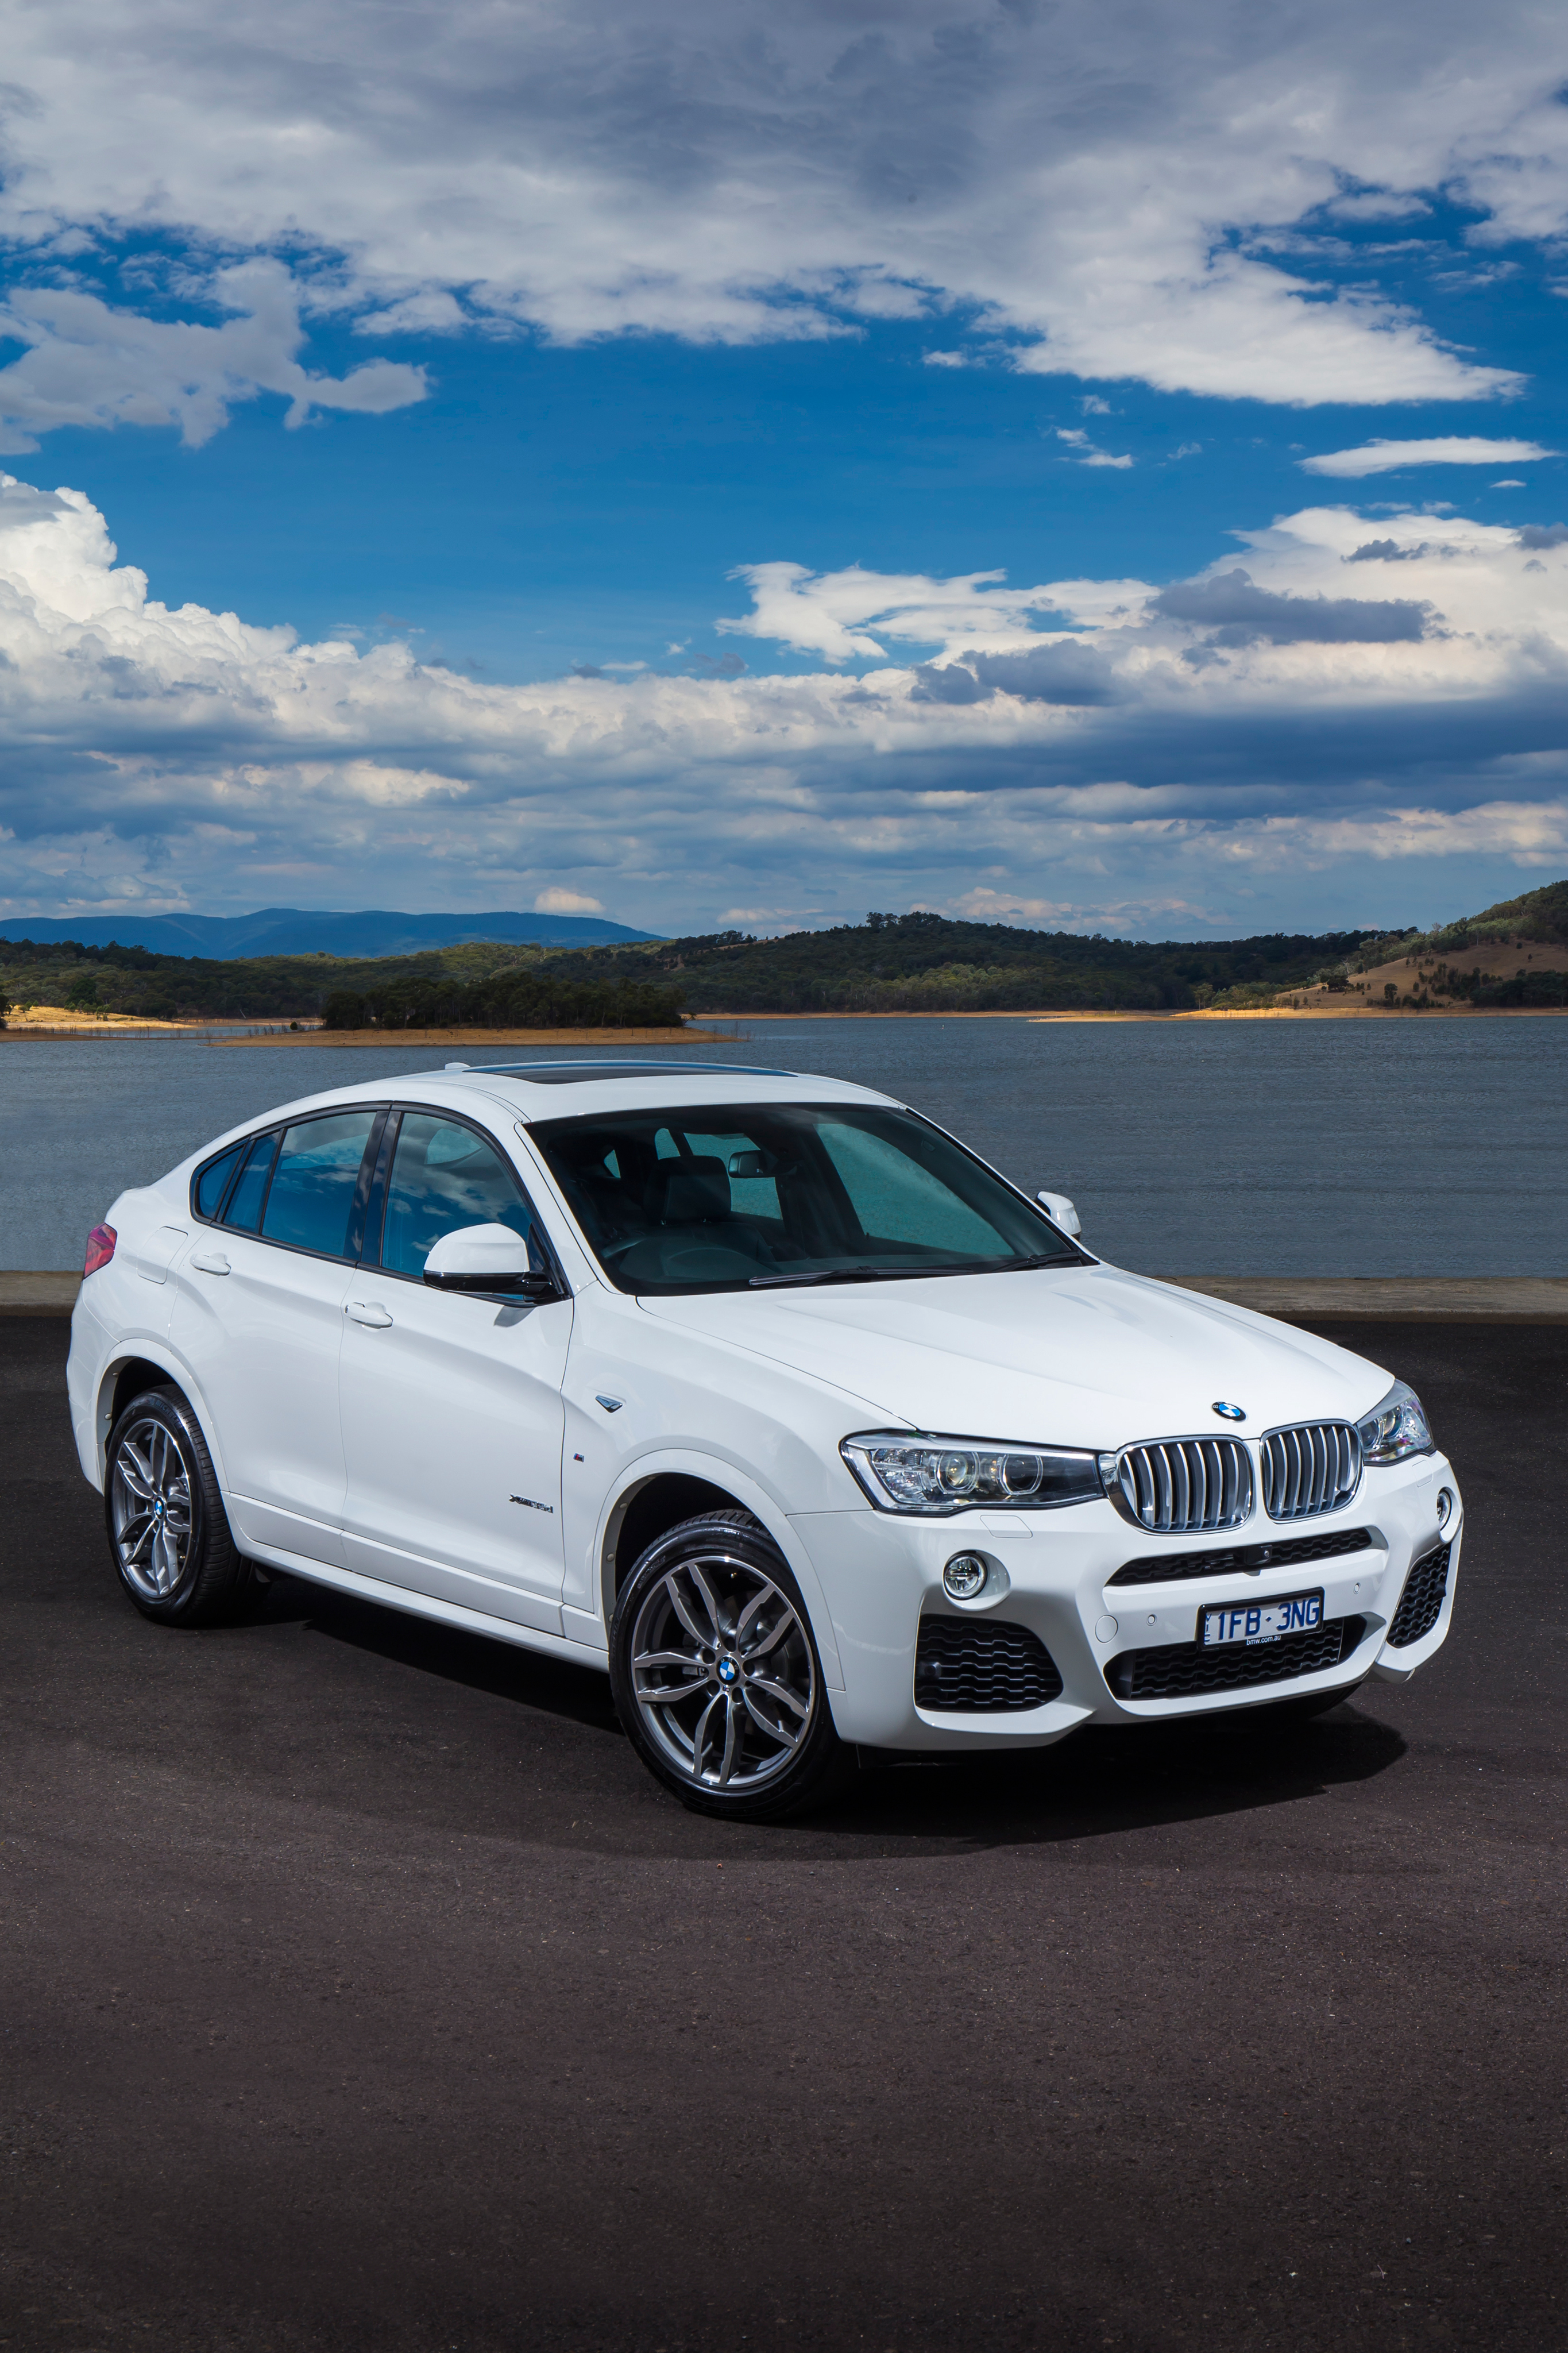 2730x4096 - BMW X4 Wallpapers 21